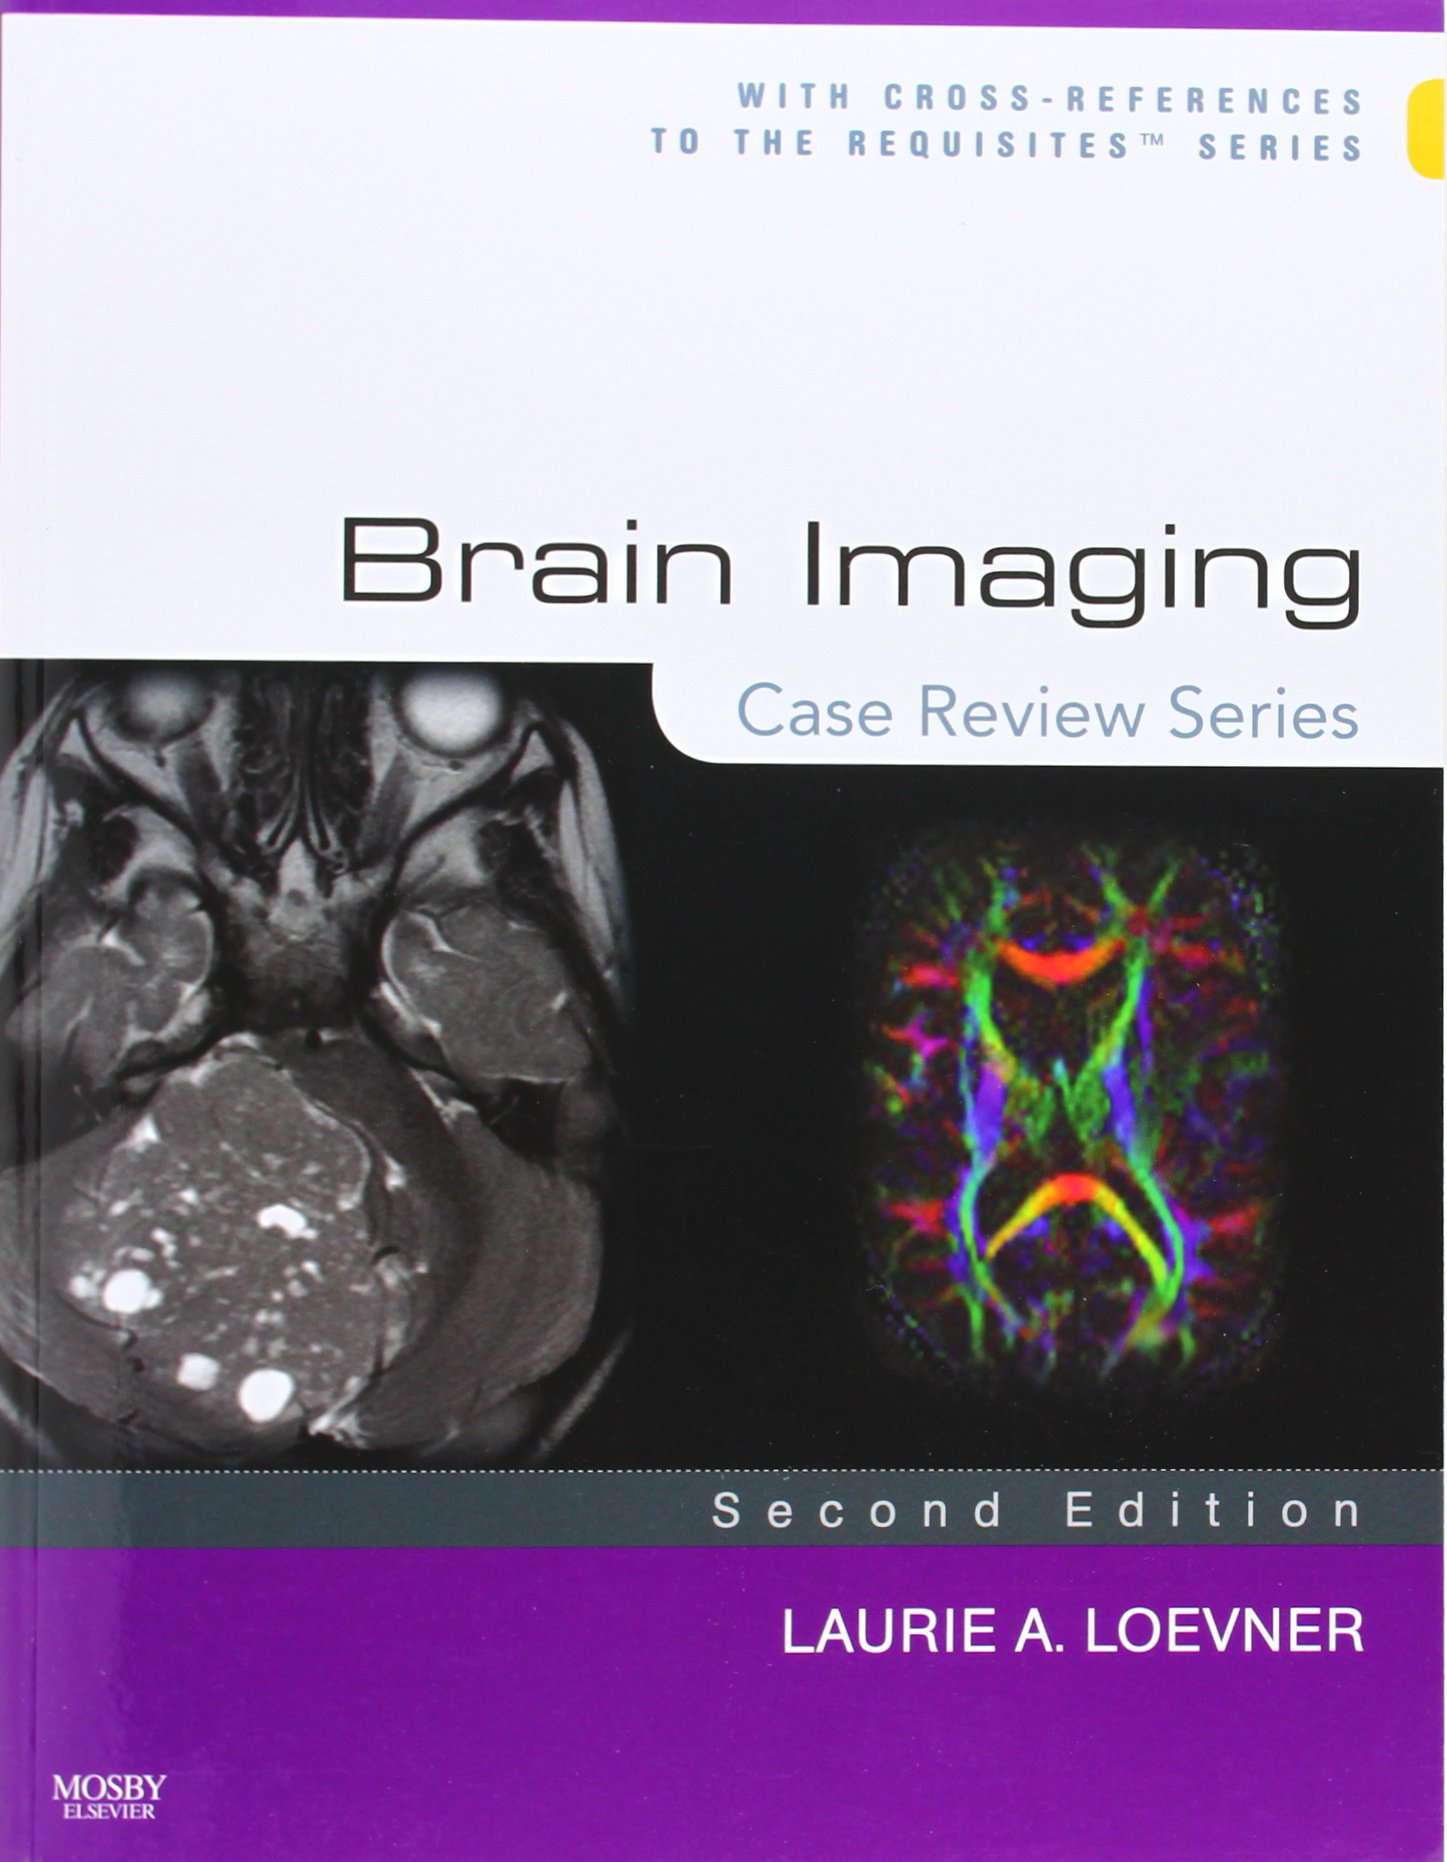 Brain Imaging: Case Review Series, 2e: Amazon.co.uk: Laurie A. Loevner MD:  Books